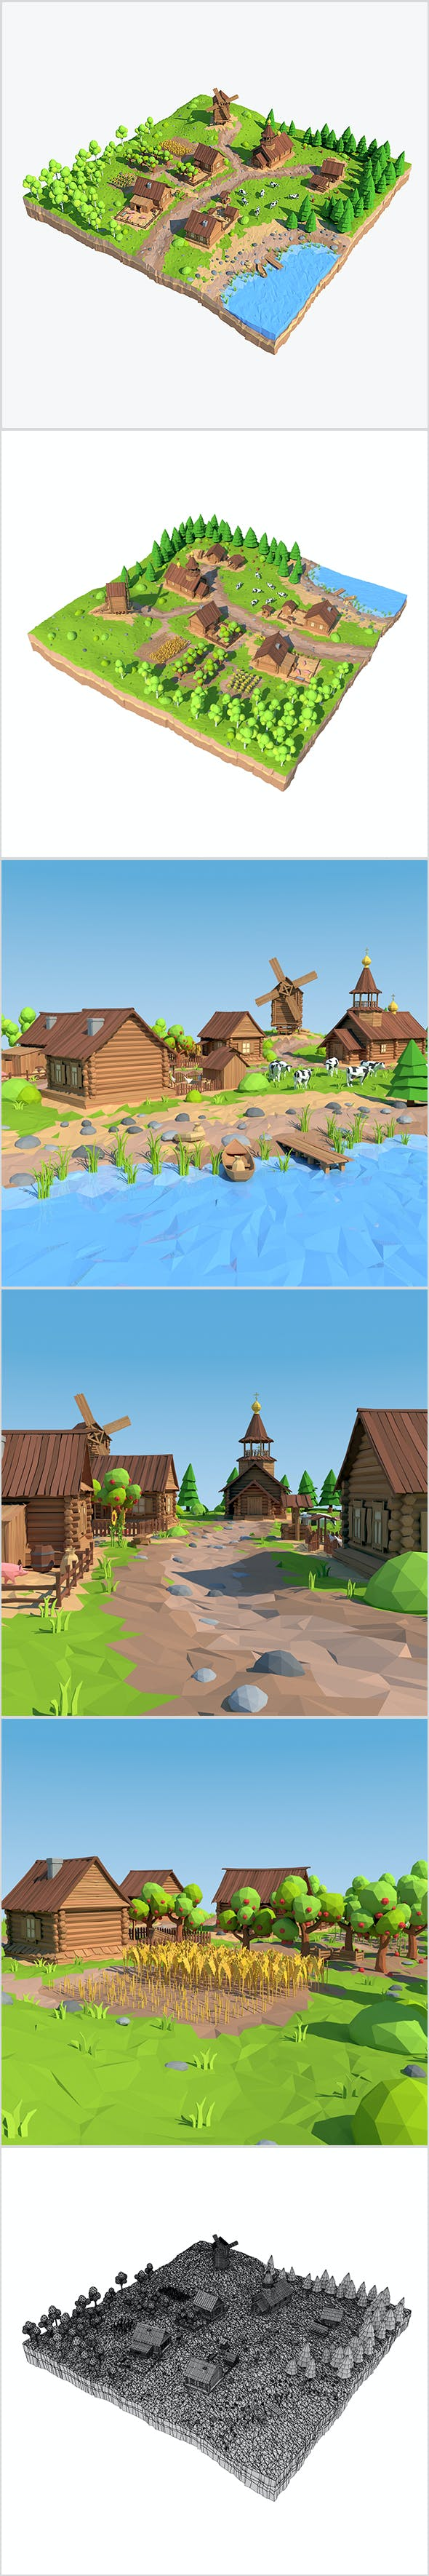 Cartoon Low Poly Village - 3DOcean Item for Sale